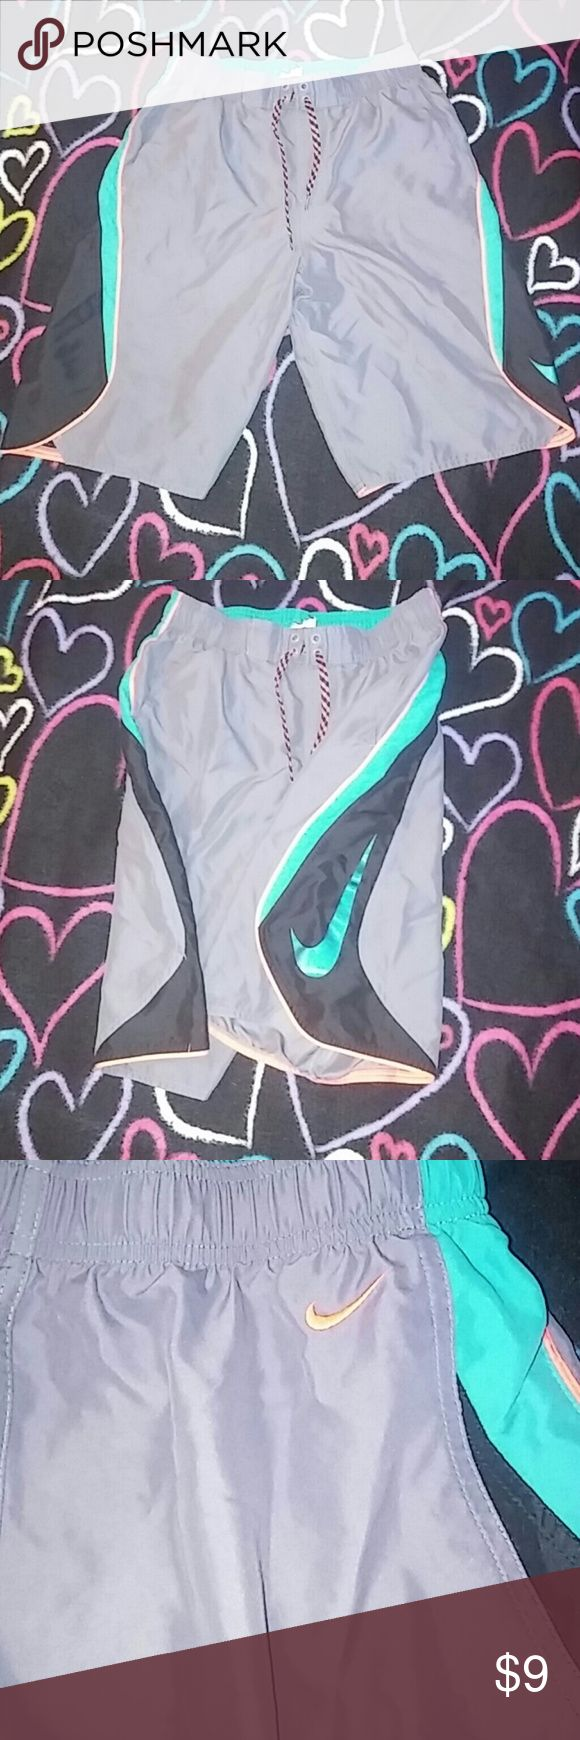 Nike Swim Trunks Great condition with everything intact. No holes or rips. Inside liner See Pic #4 for only Tag flaw. Nike Swim Swim Trunks